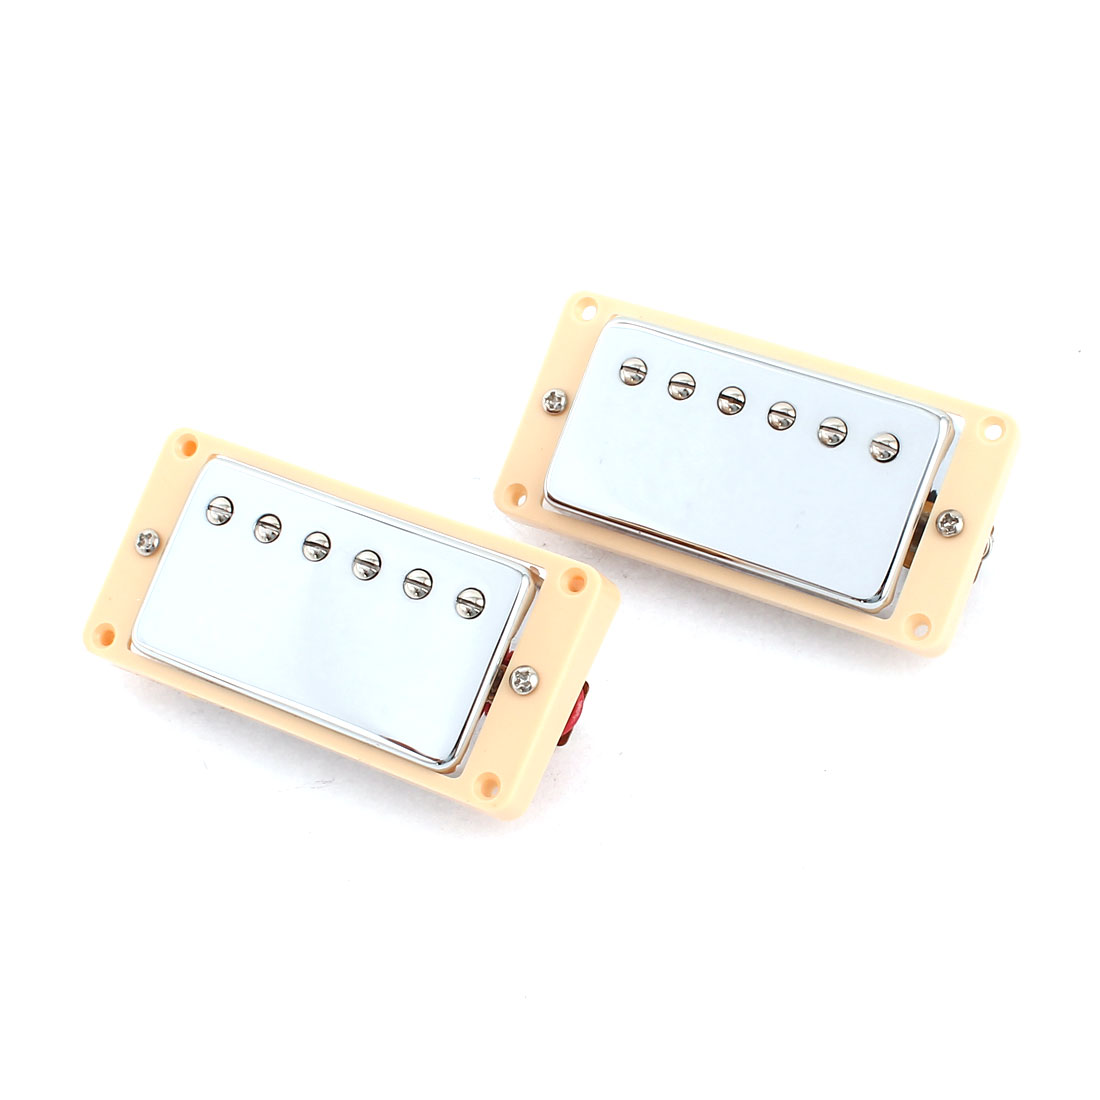 2 Pcs Electric Guitar LP Neck Bridge Pickups Beige Silver Tone